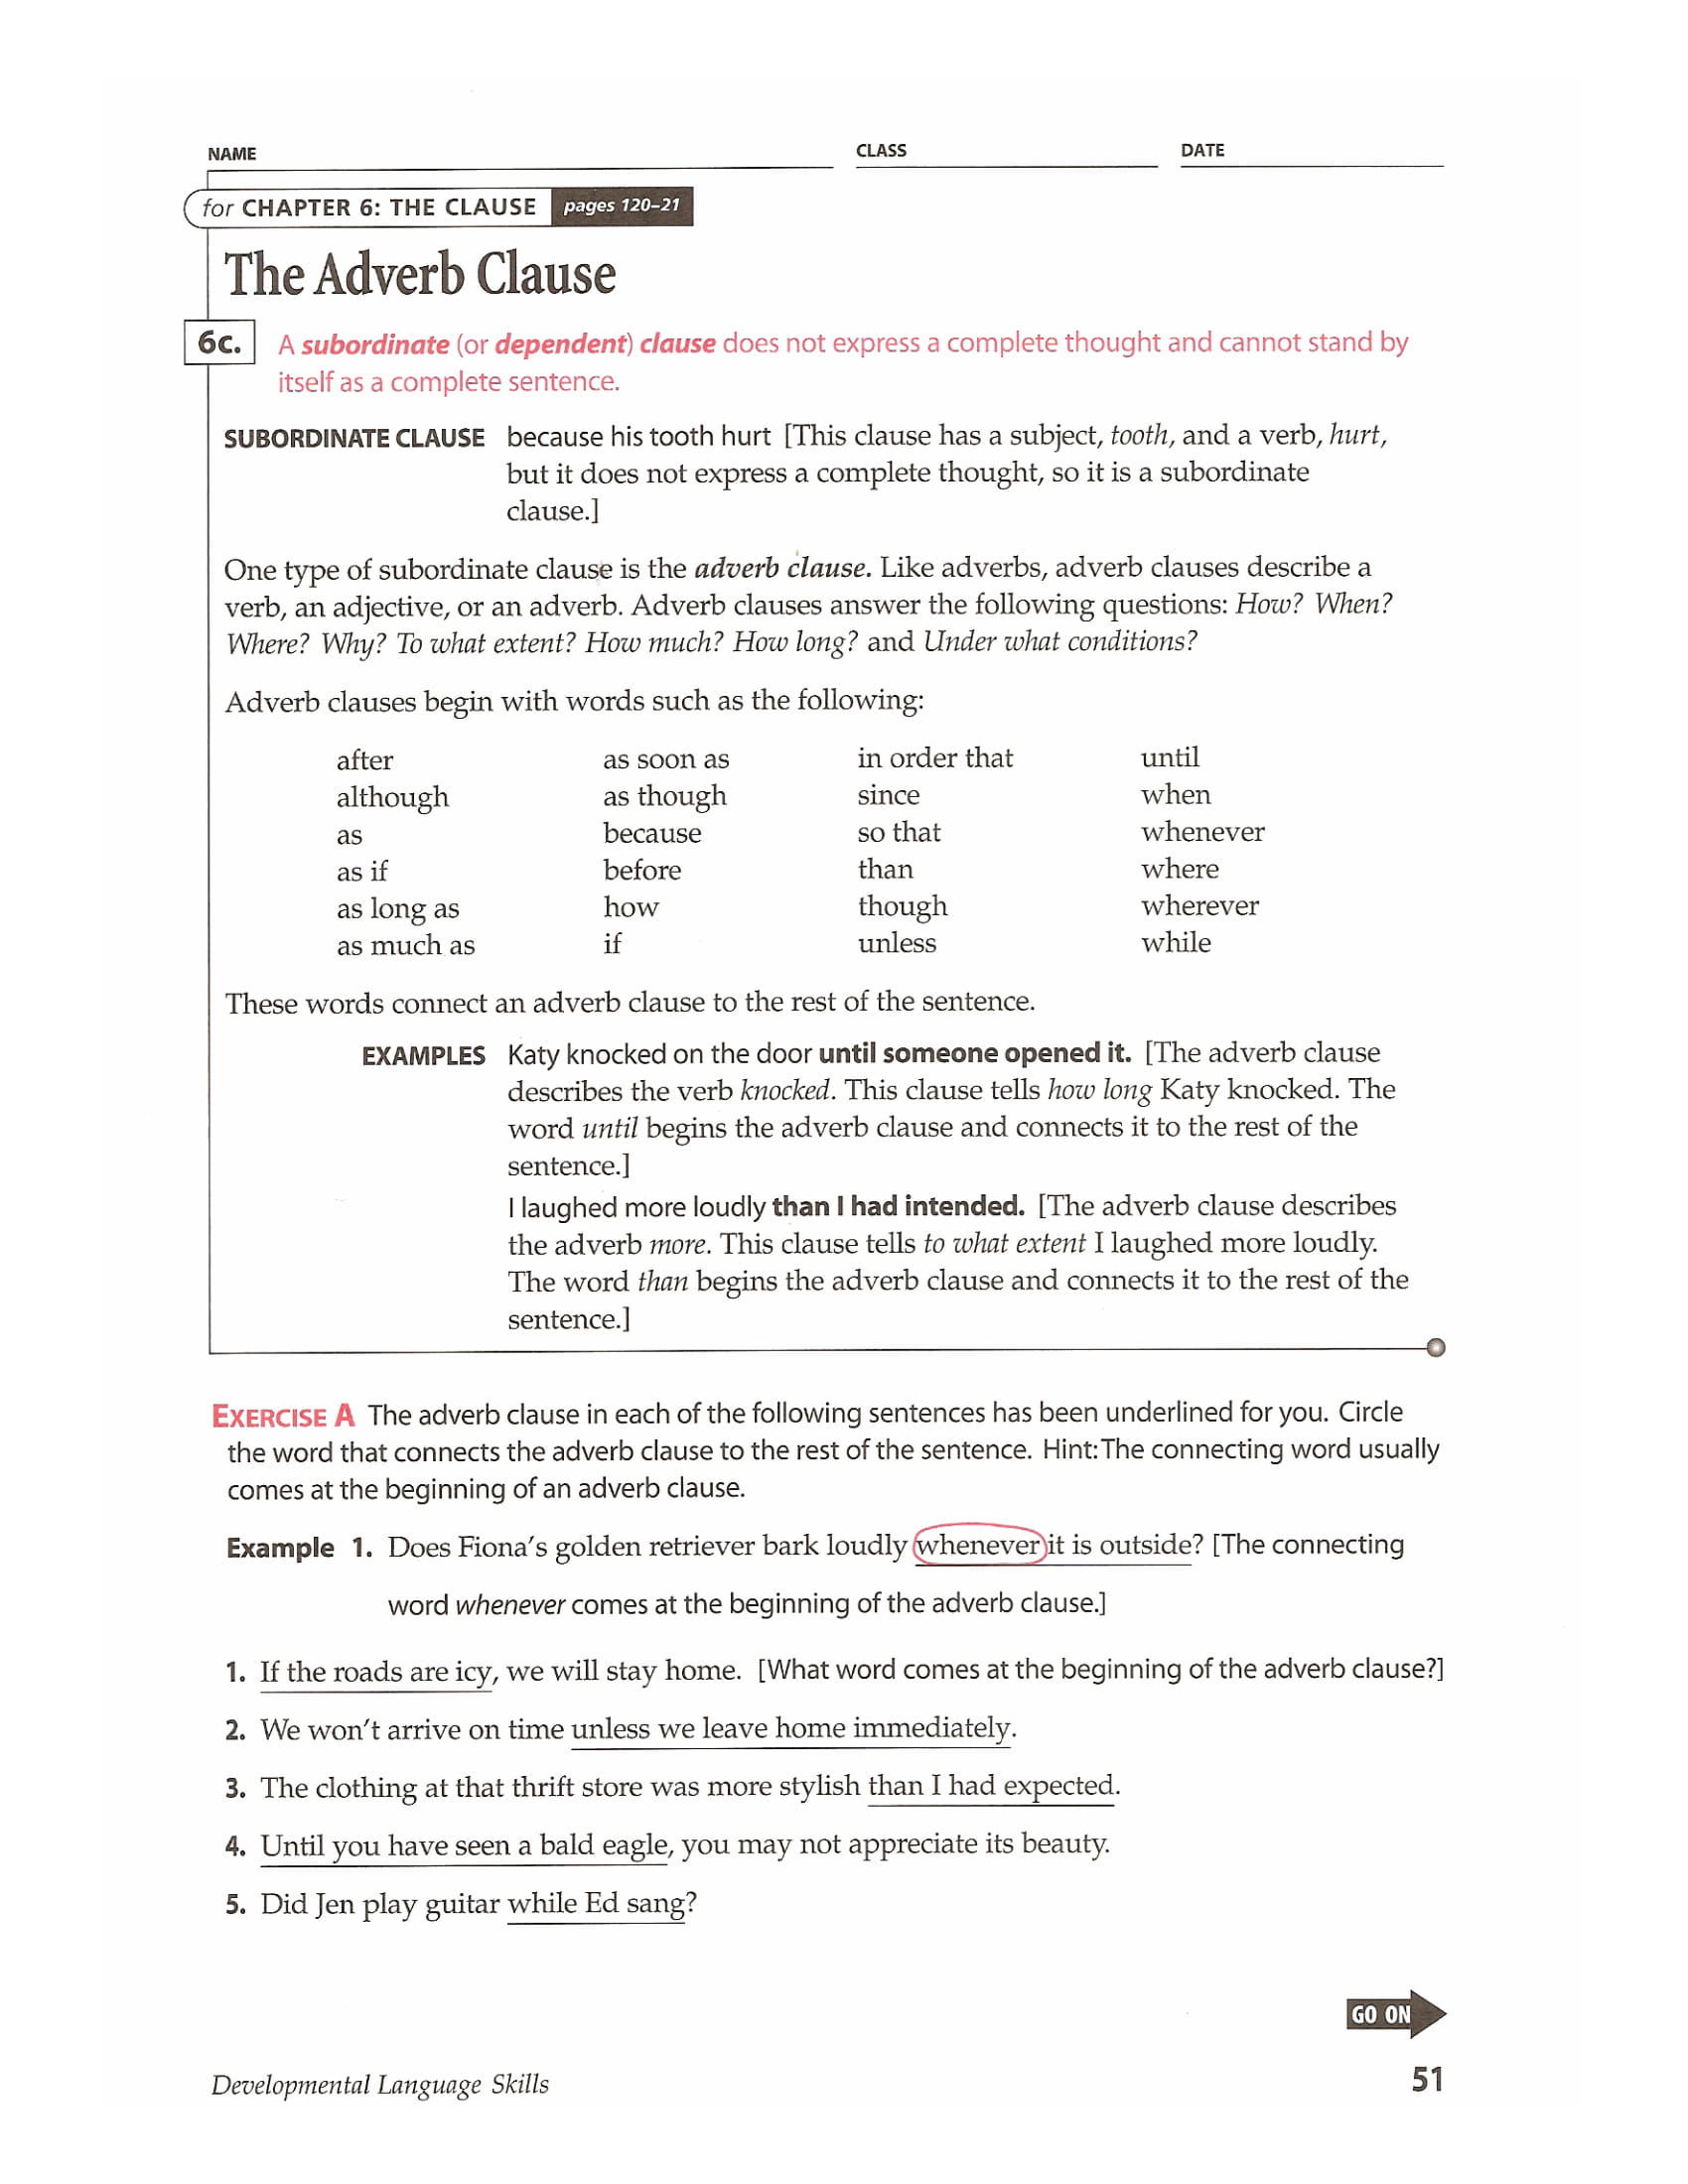 Worksheets Adverb Clause Worksheet Cheatslist Free Worksheets For Kids Amp Printable